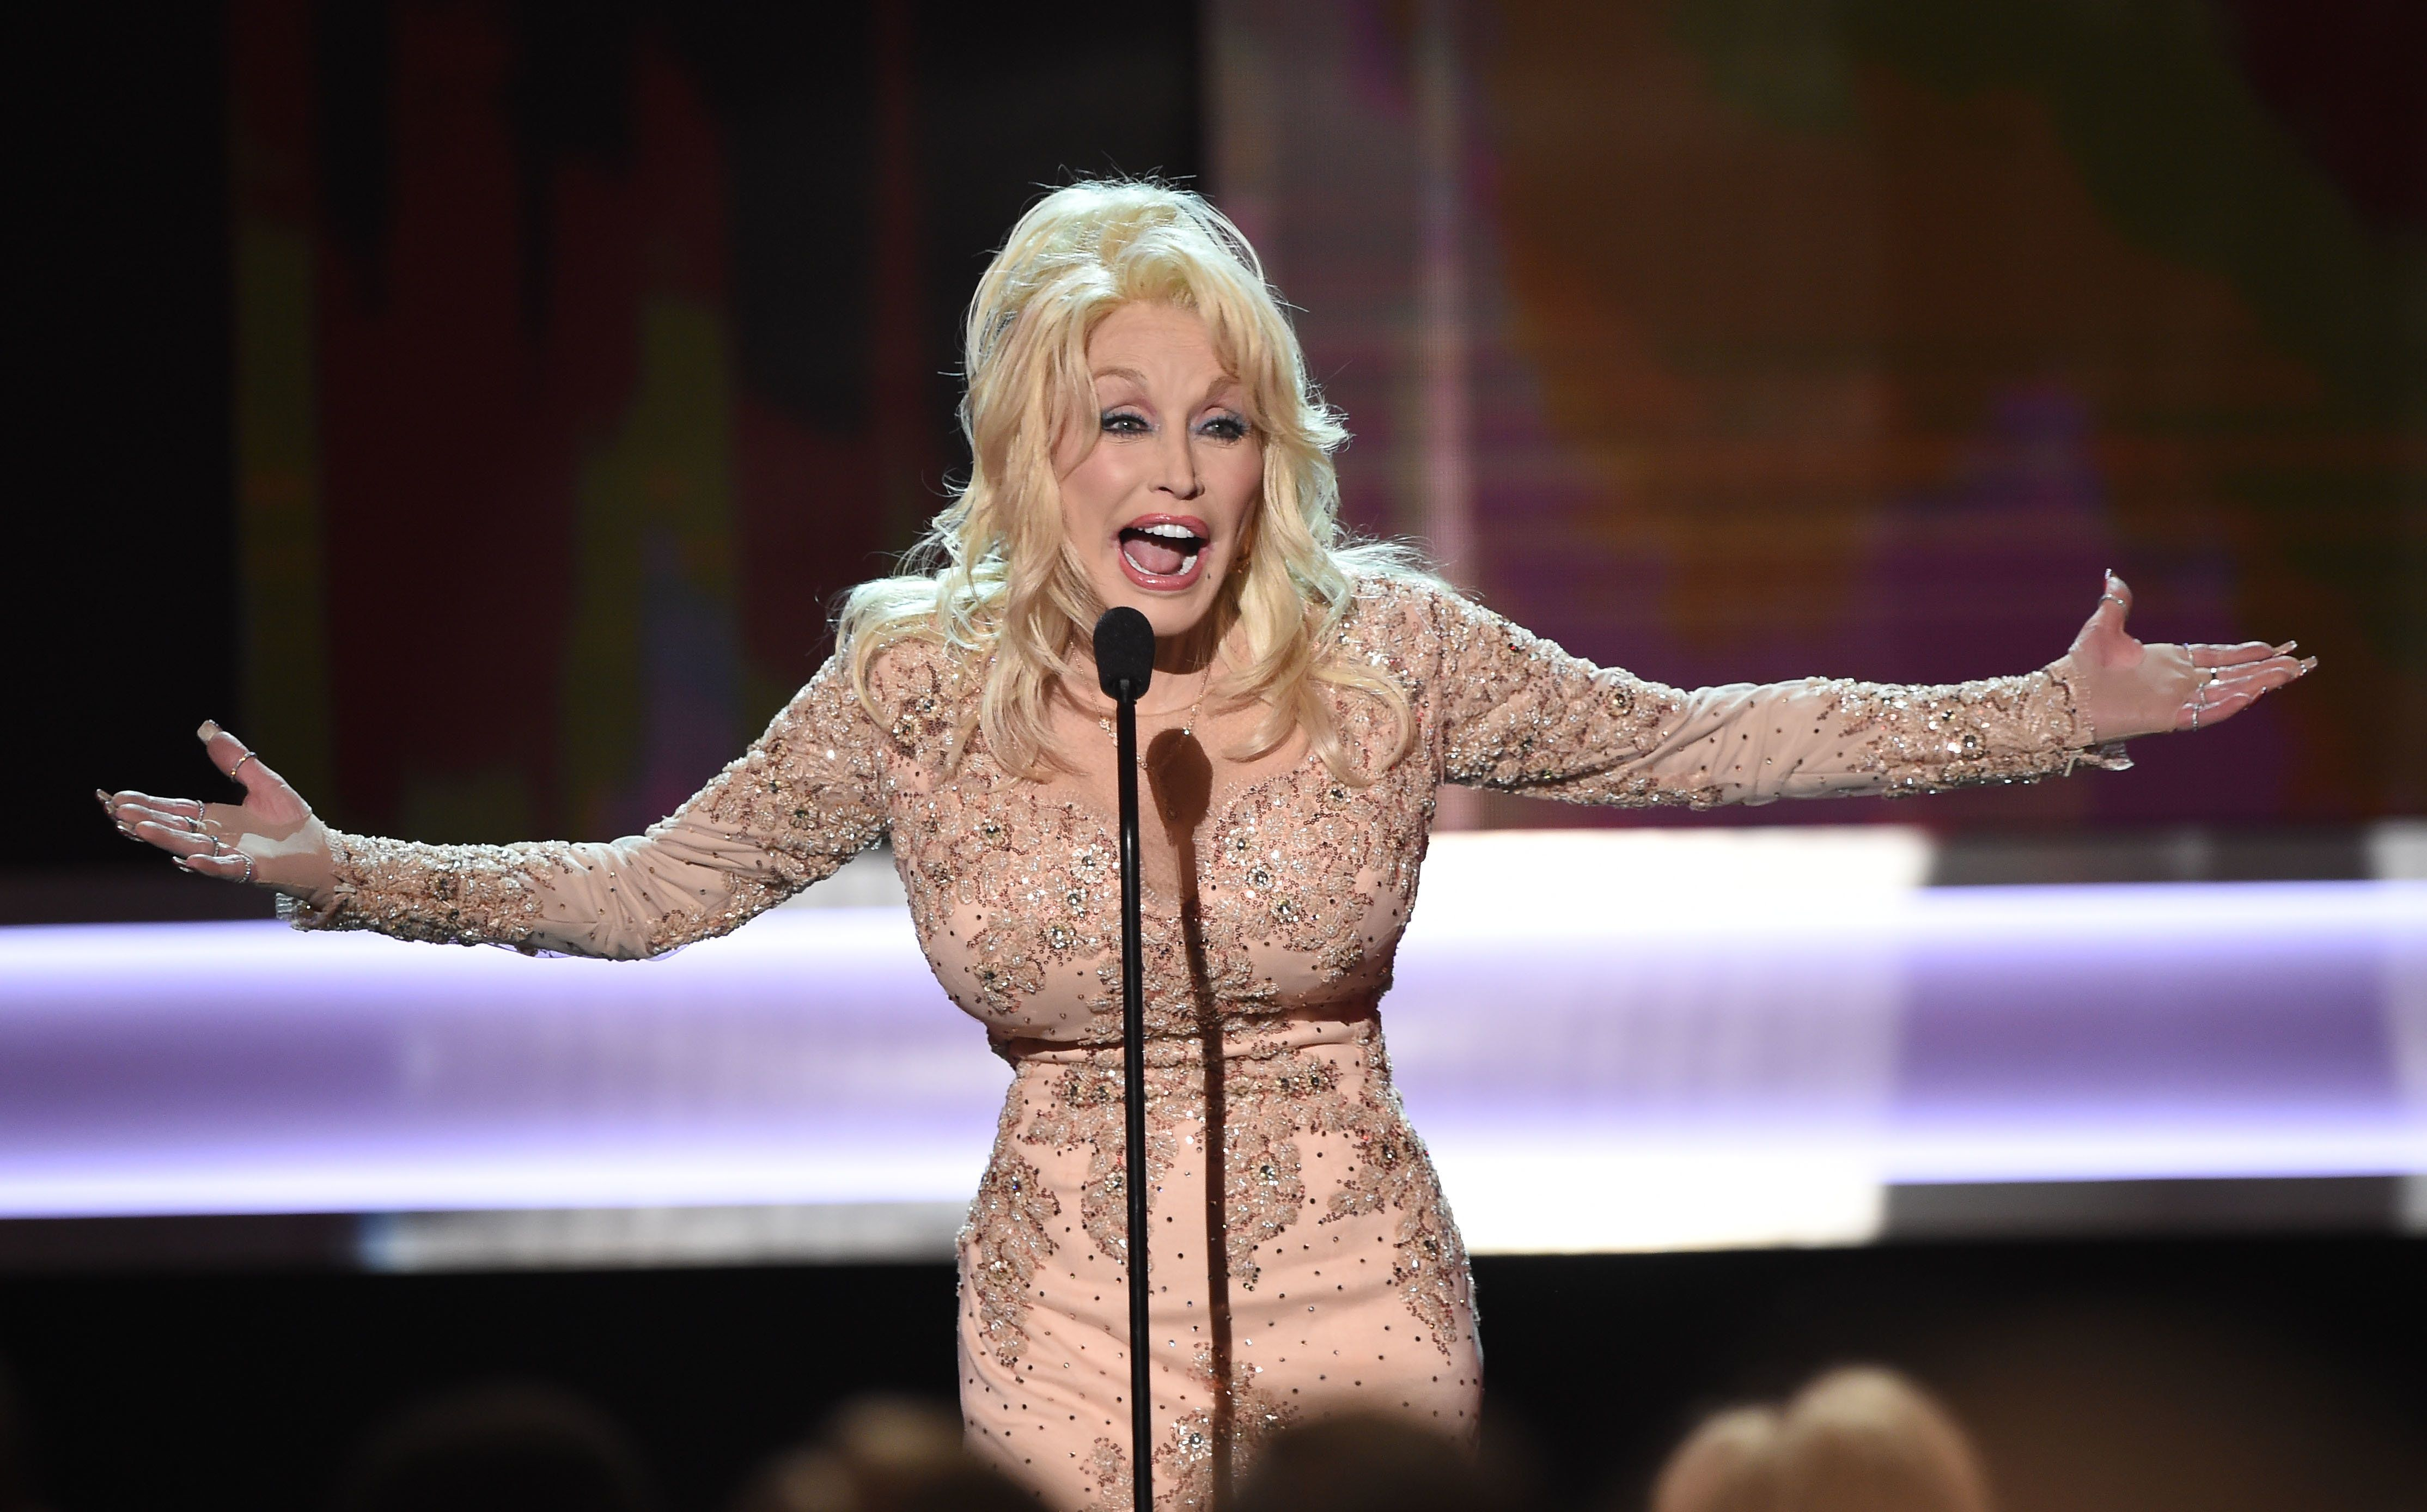 Singer/actor Dolly Parton speaks onstage during the 23rd Annual Screen Actors Guild Awards show at The Shrine Auditorium on January 29, 2017 in Los Angeles, California. / AFP / Robyn BECK        (Photo credit should read ROBYN BECK/AFP/Getty Images)